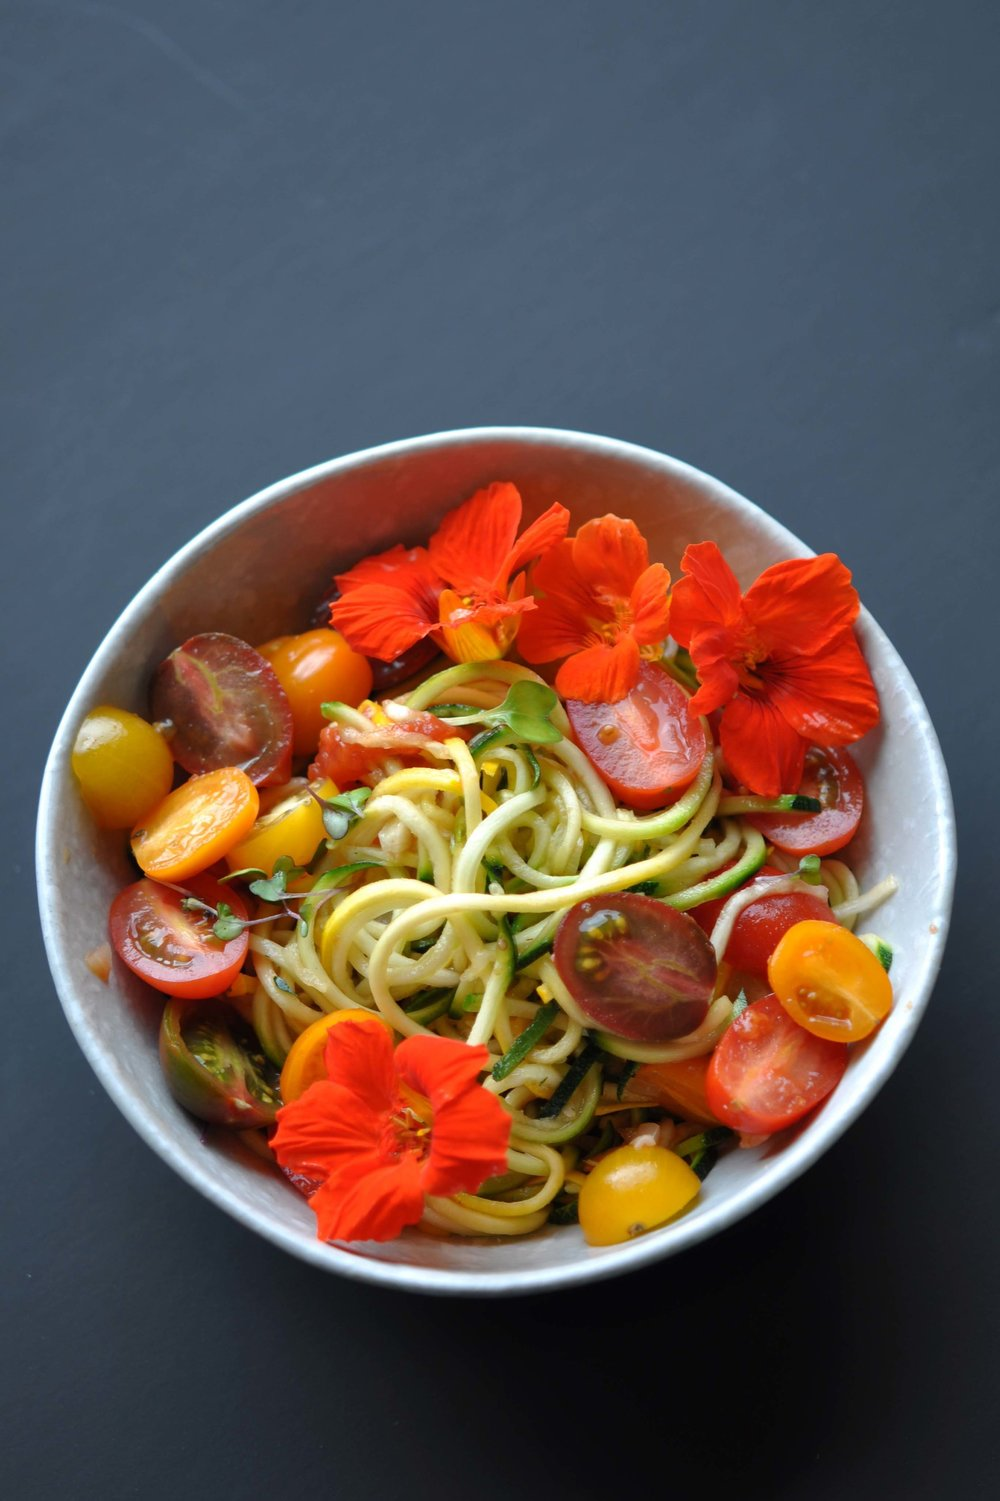 Zucchini Noodles with Tomato Sauce & Edible Flowers | Shiny Happy Bright